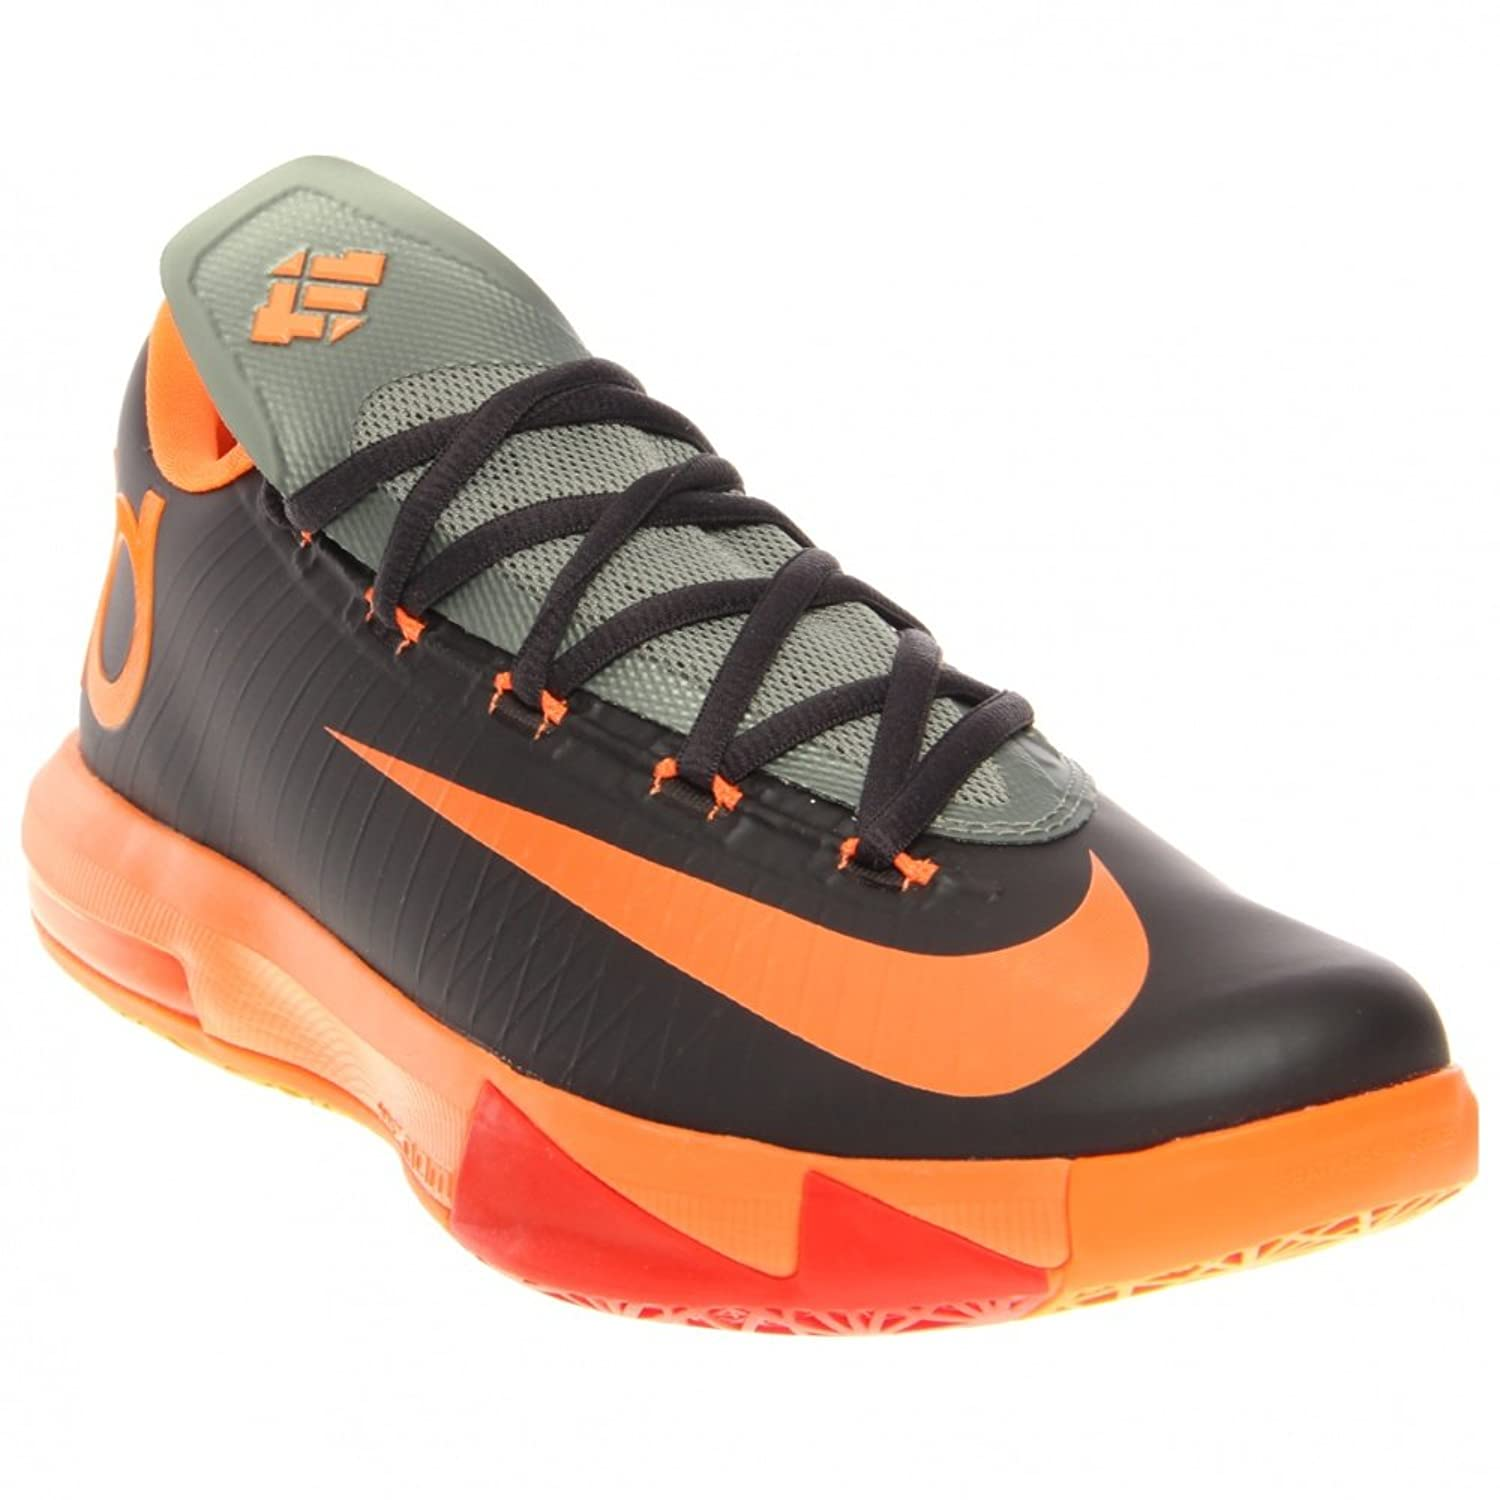 NIKE KD VI Kevin Durant Basketball Shoes 599424-007